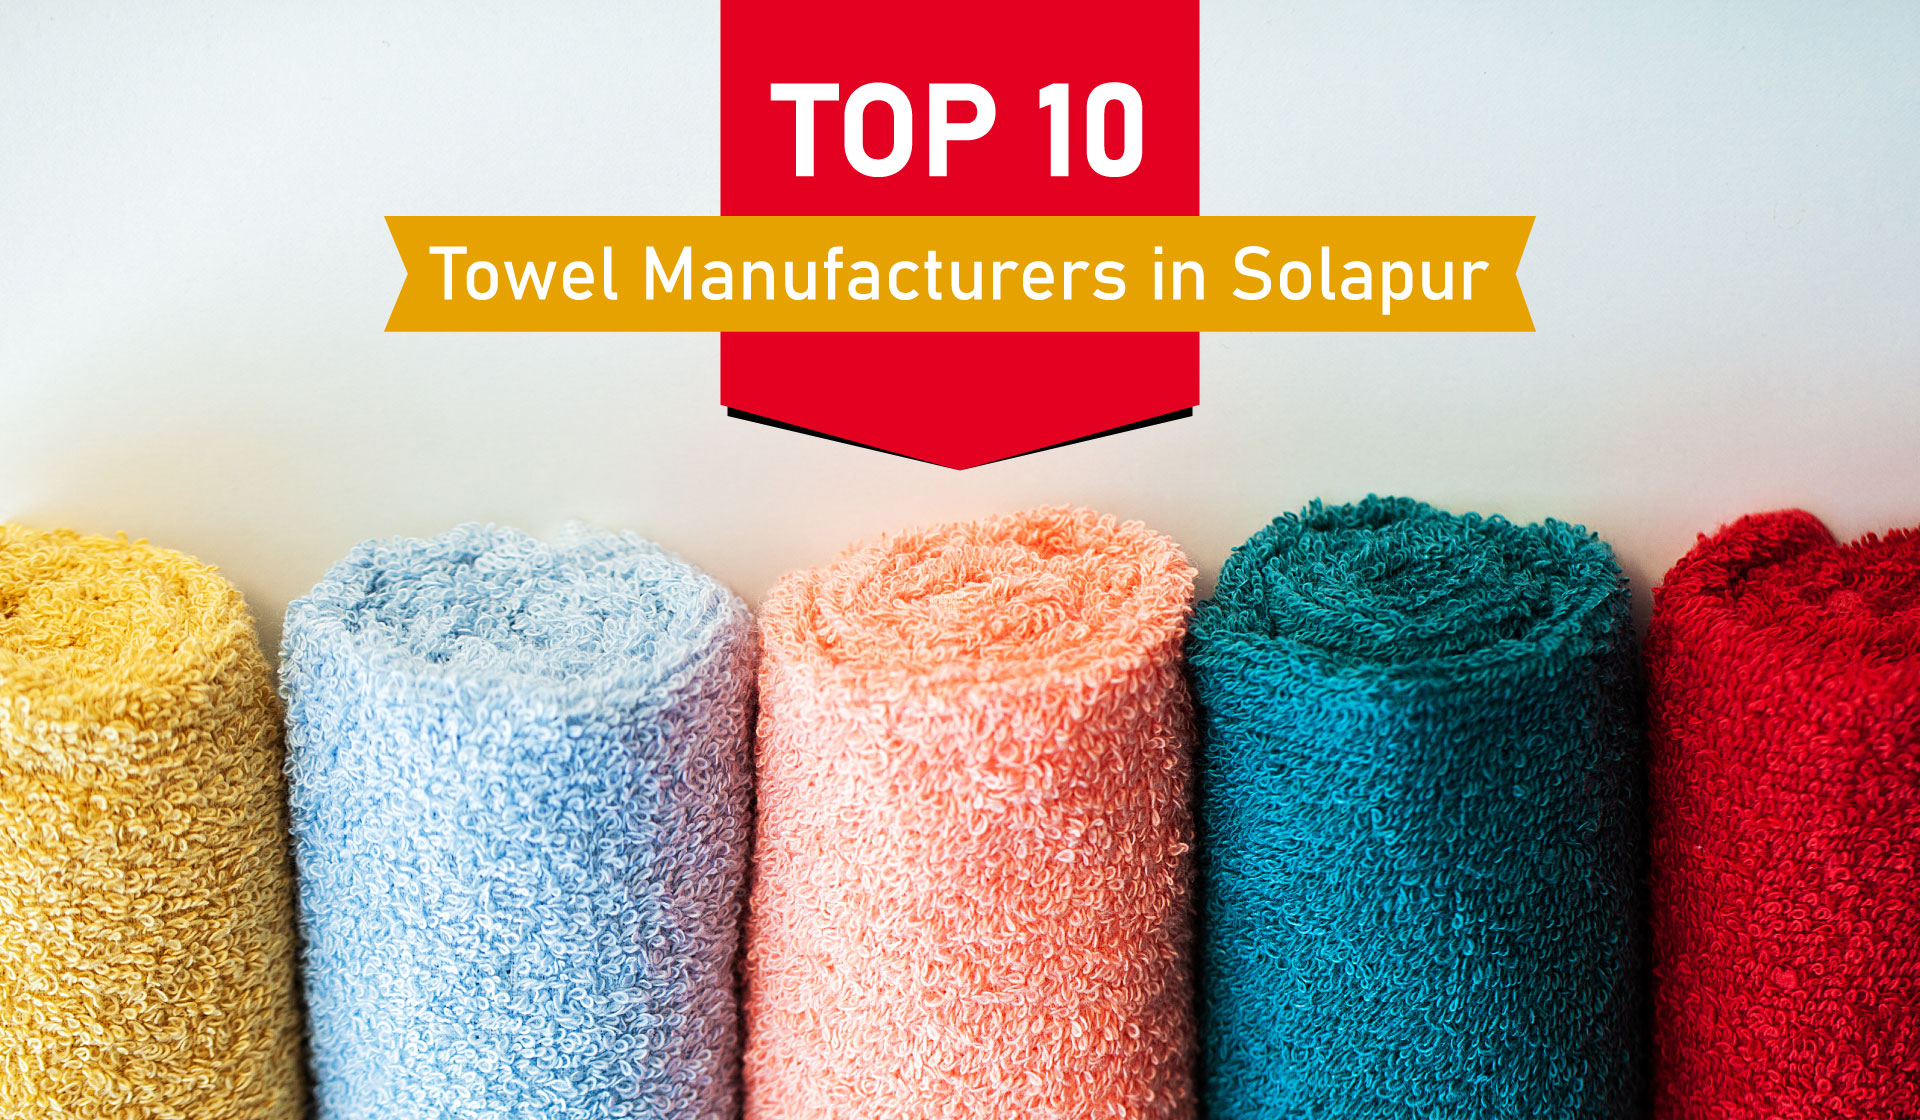 Top 10 Towel Manufacturers in Solapur